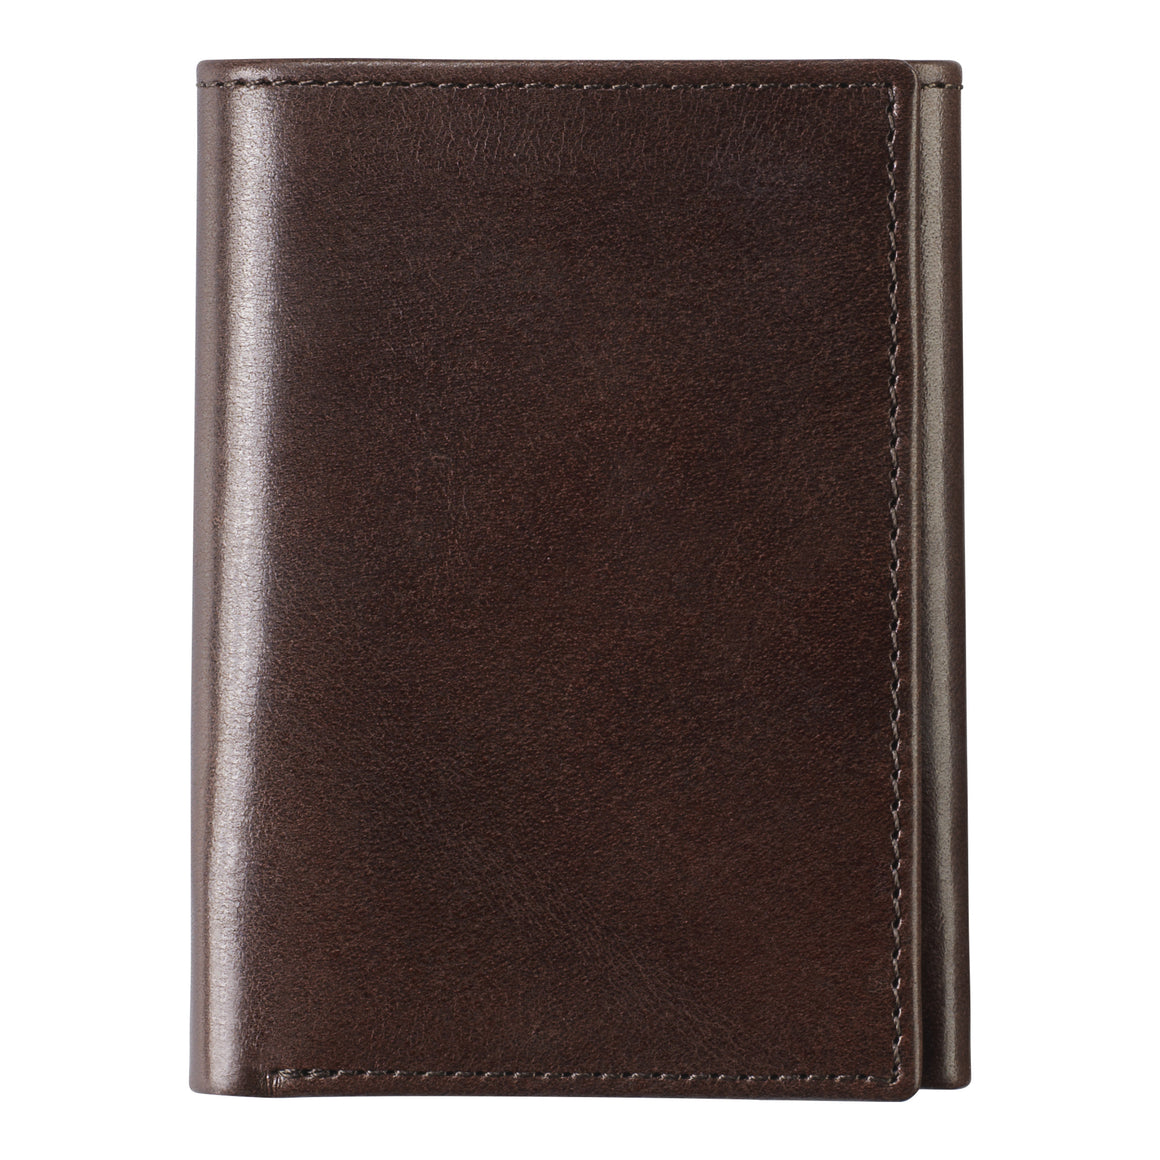 Johnston and Murphy Trifold Wallet